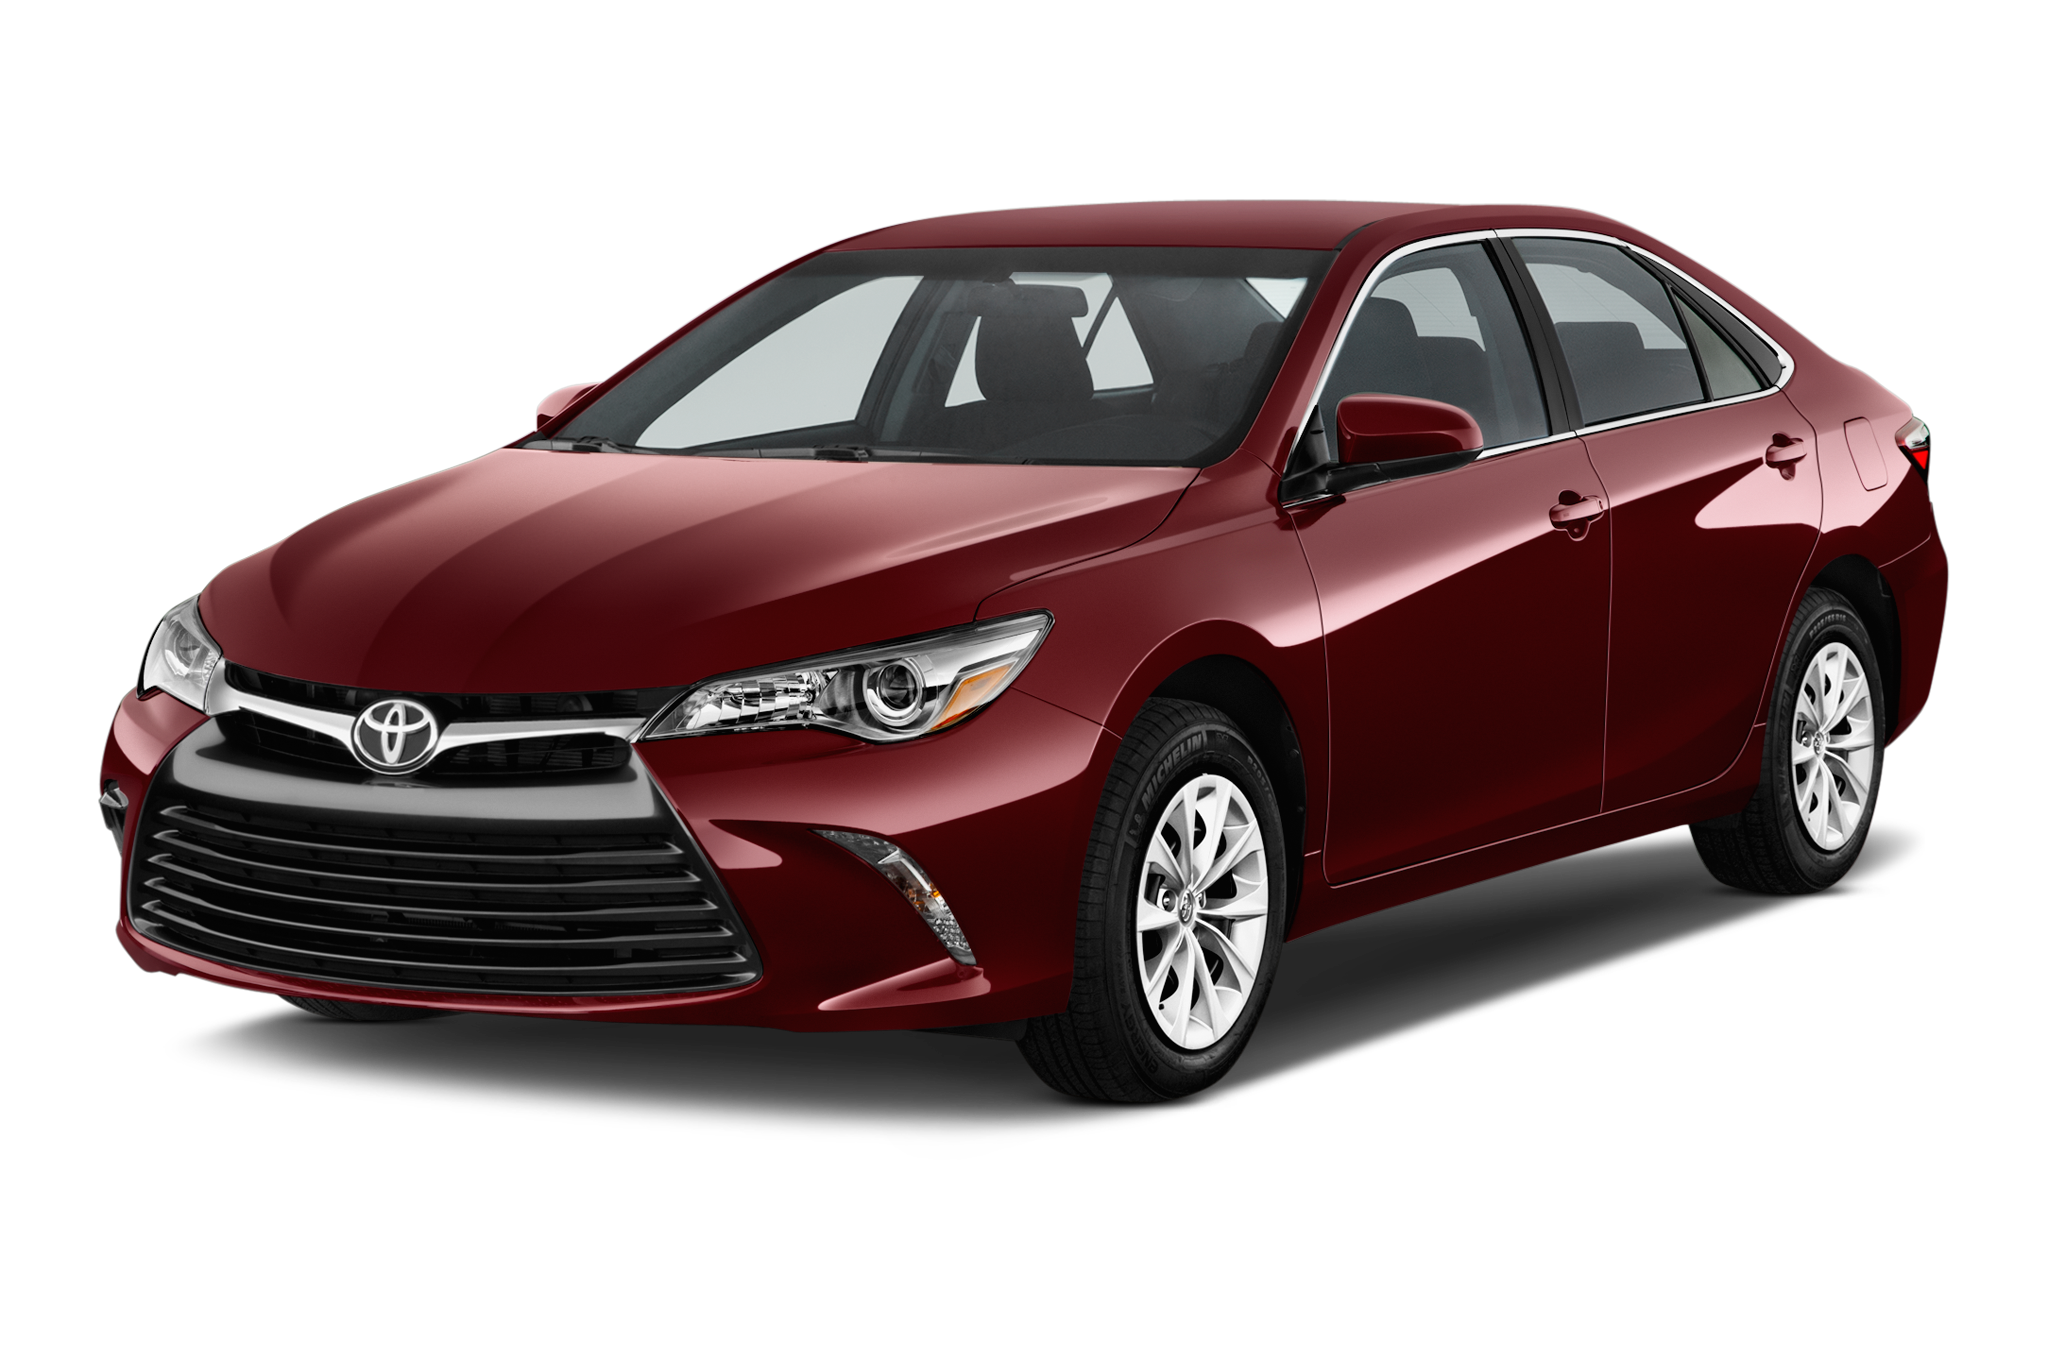 2017 toyota camry overview msn autos. Black Bedroom Furniture Sets. Home Design Ideas